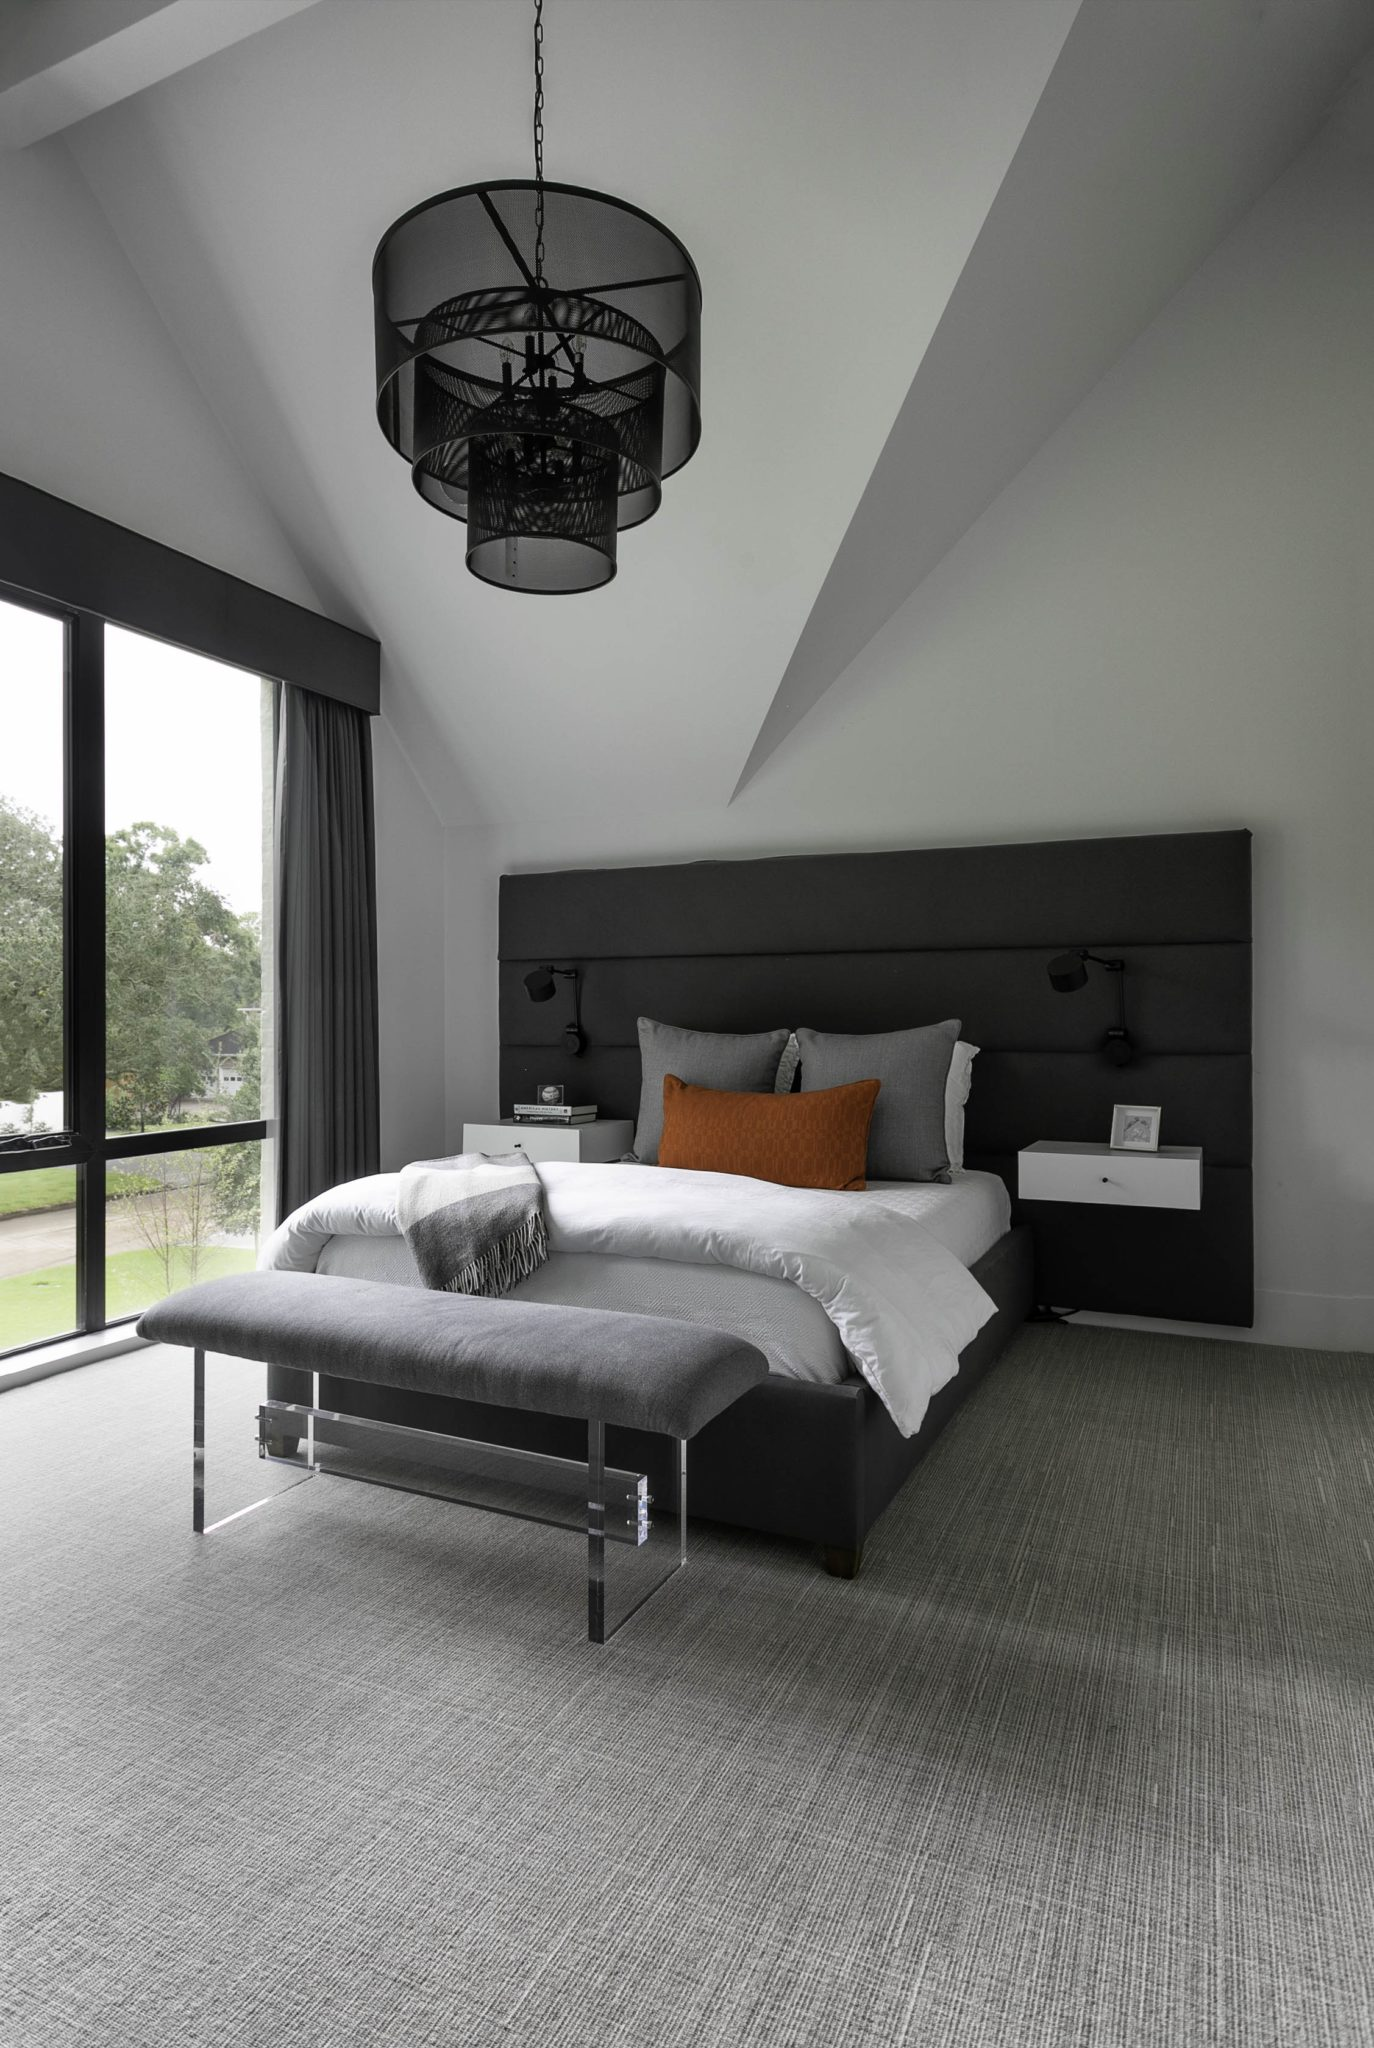 Stylish Bedrooms With Oversized Headboards Chairish Blog